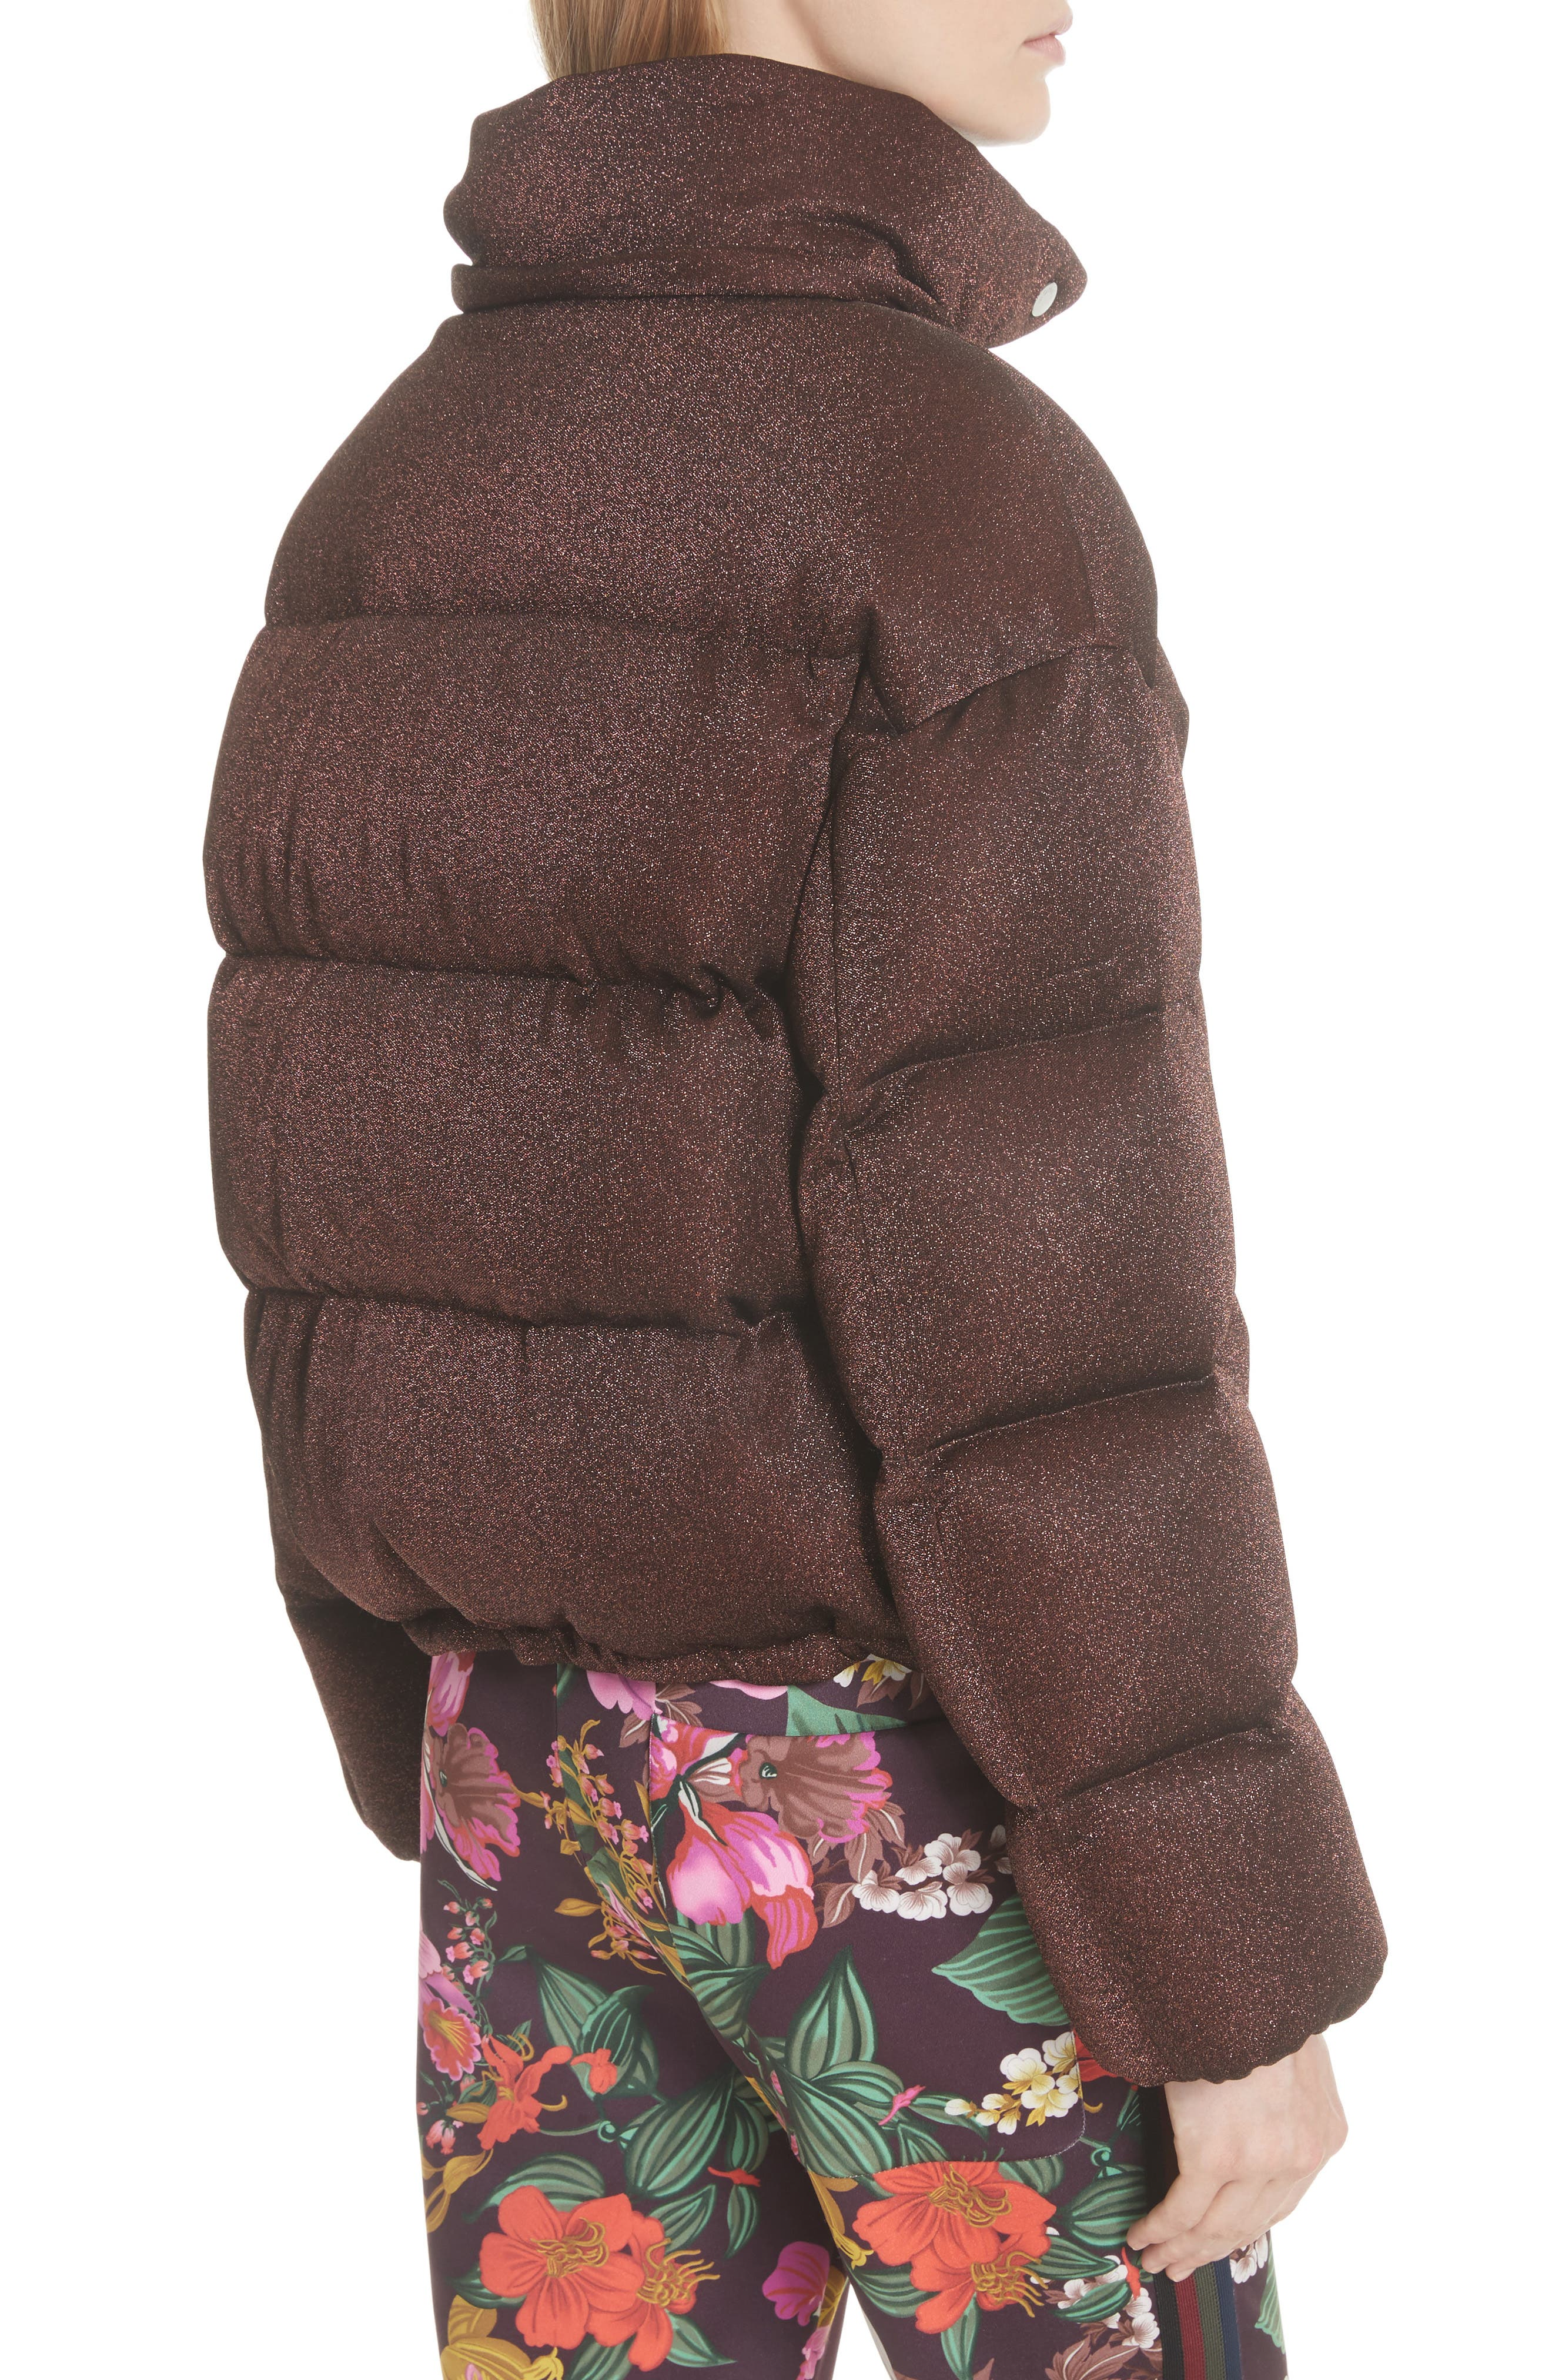 MONCLER, Caille Metallic Quilted Down Jacket, Alternate thumbnail 2, color, 224